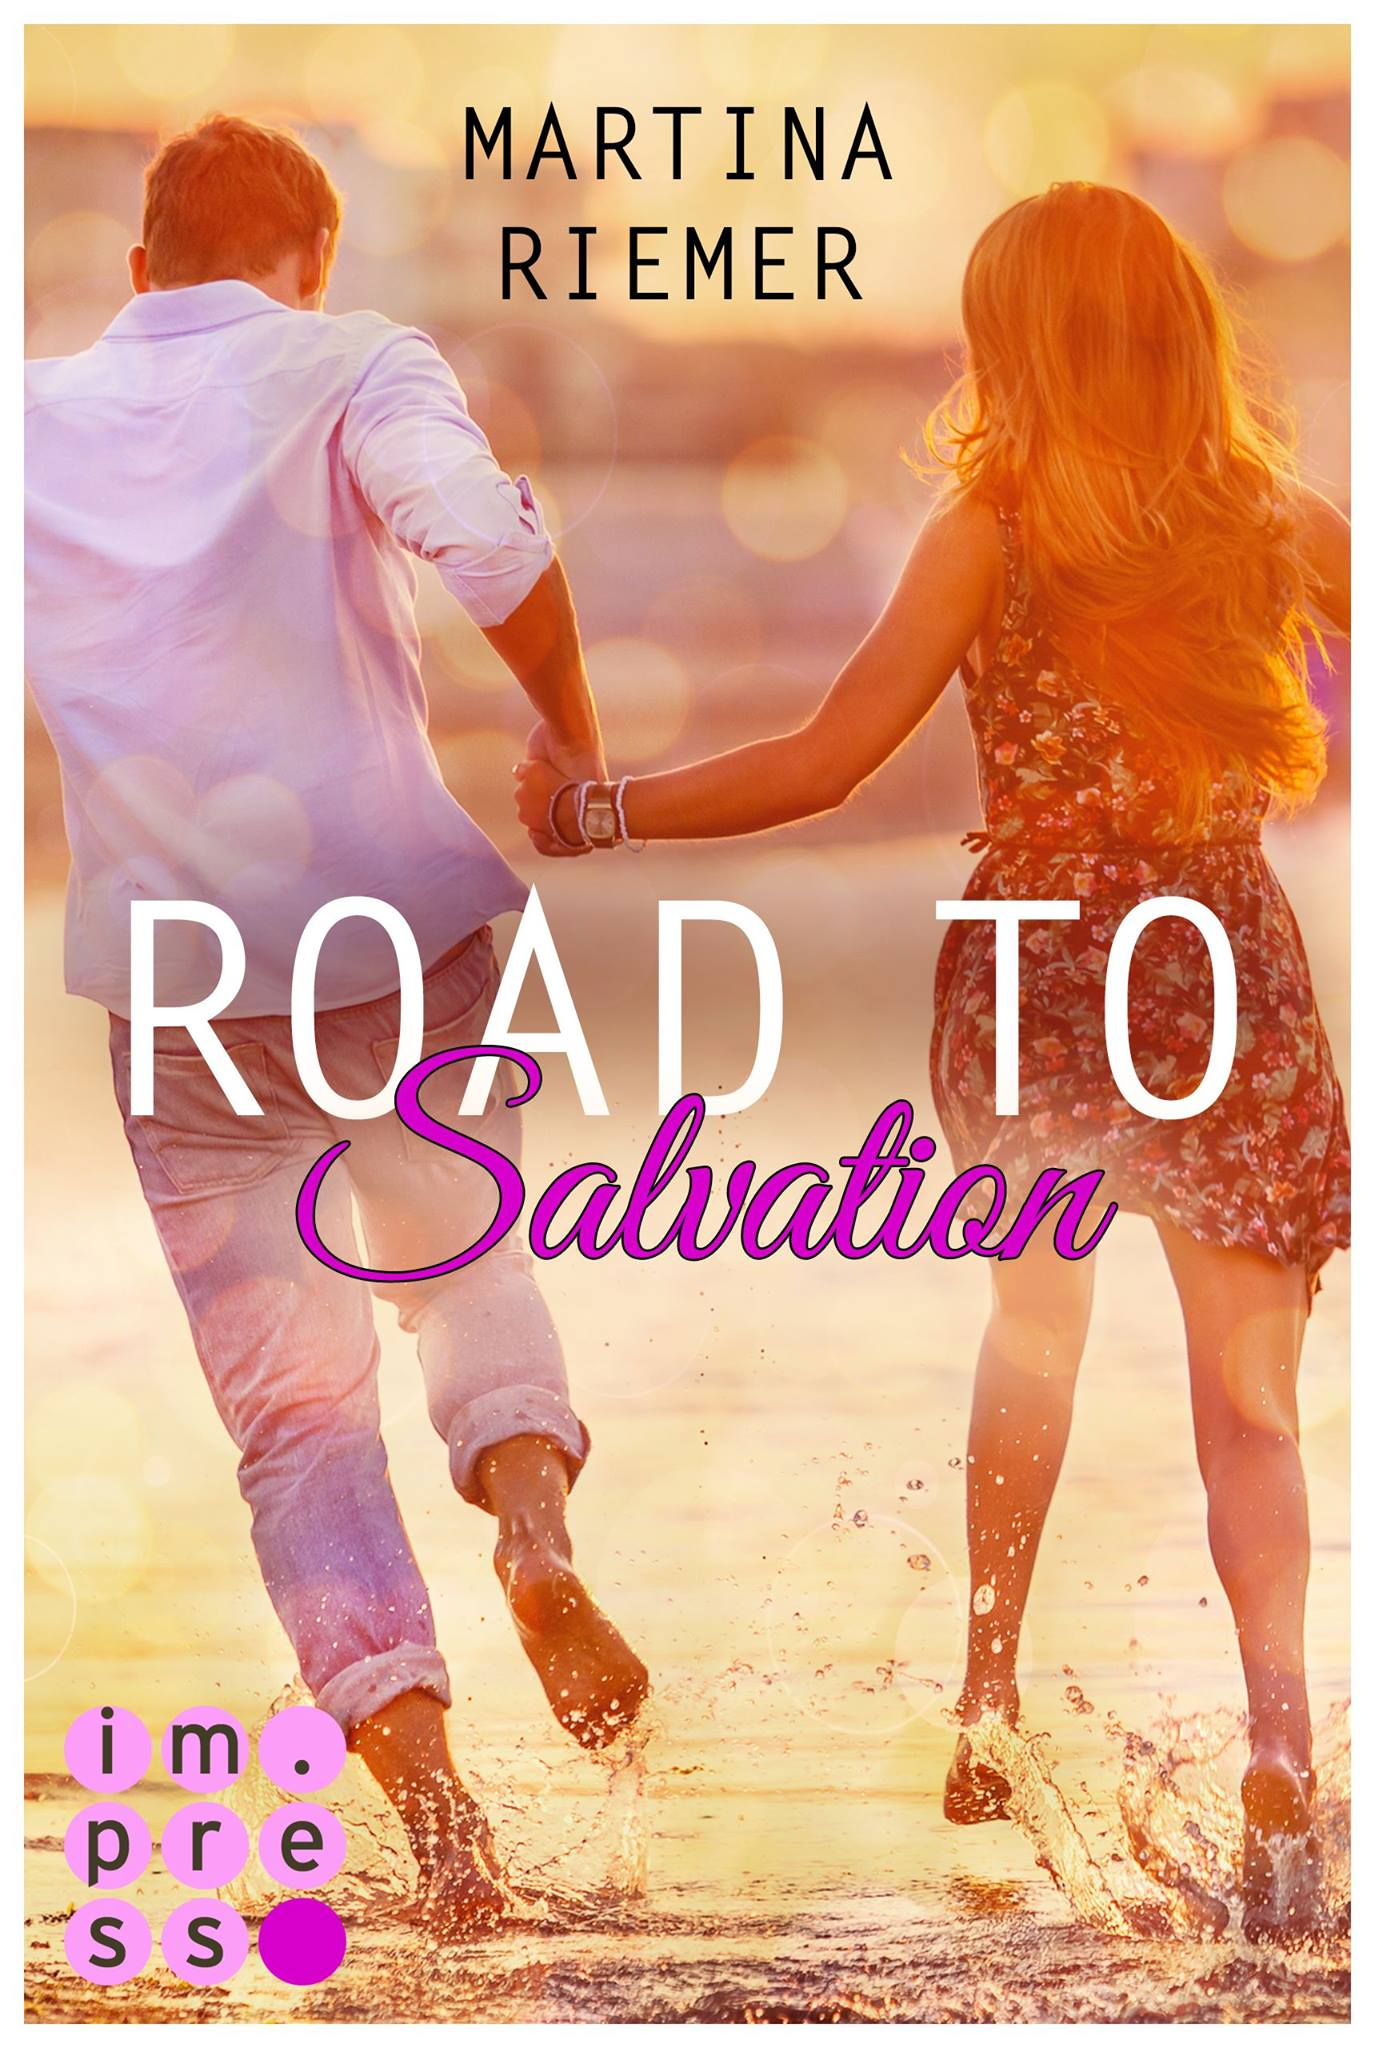 Coverbild vom Buch 'Road to Salavation' von Matrina Riemer